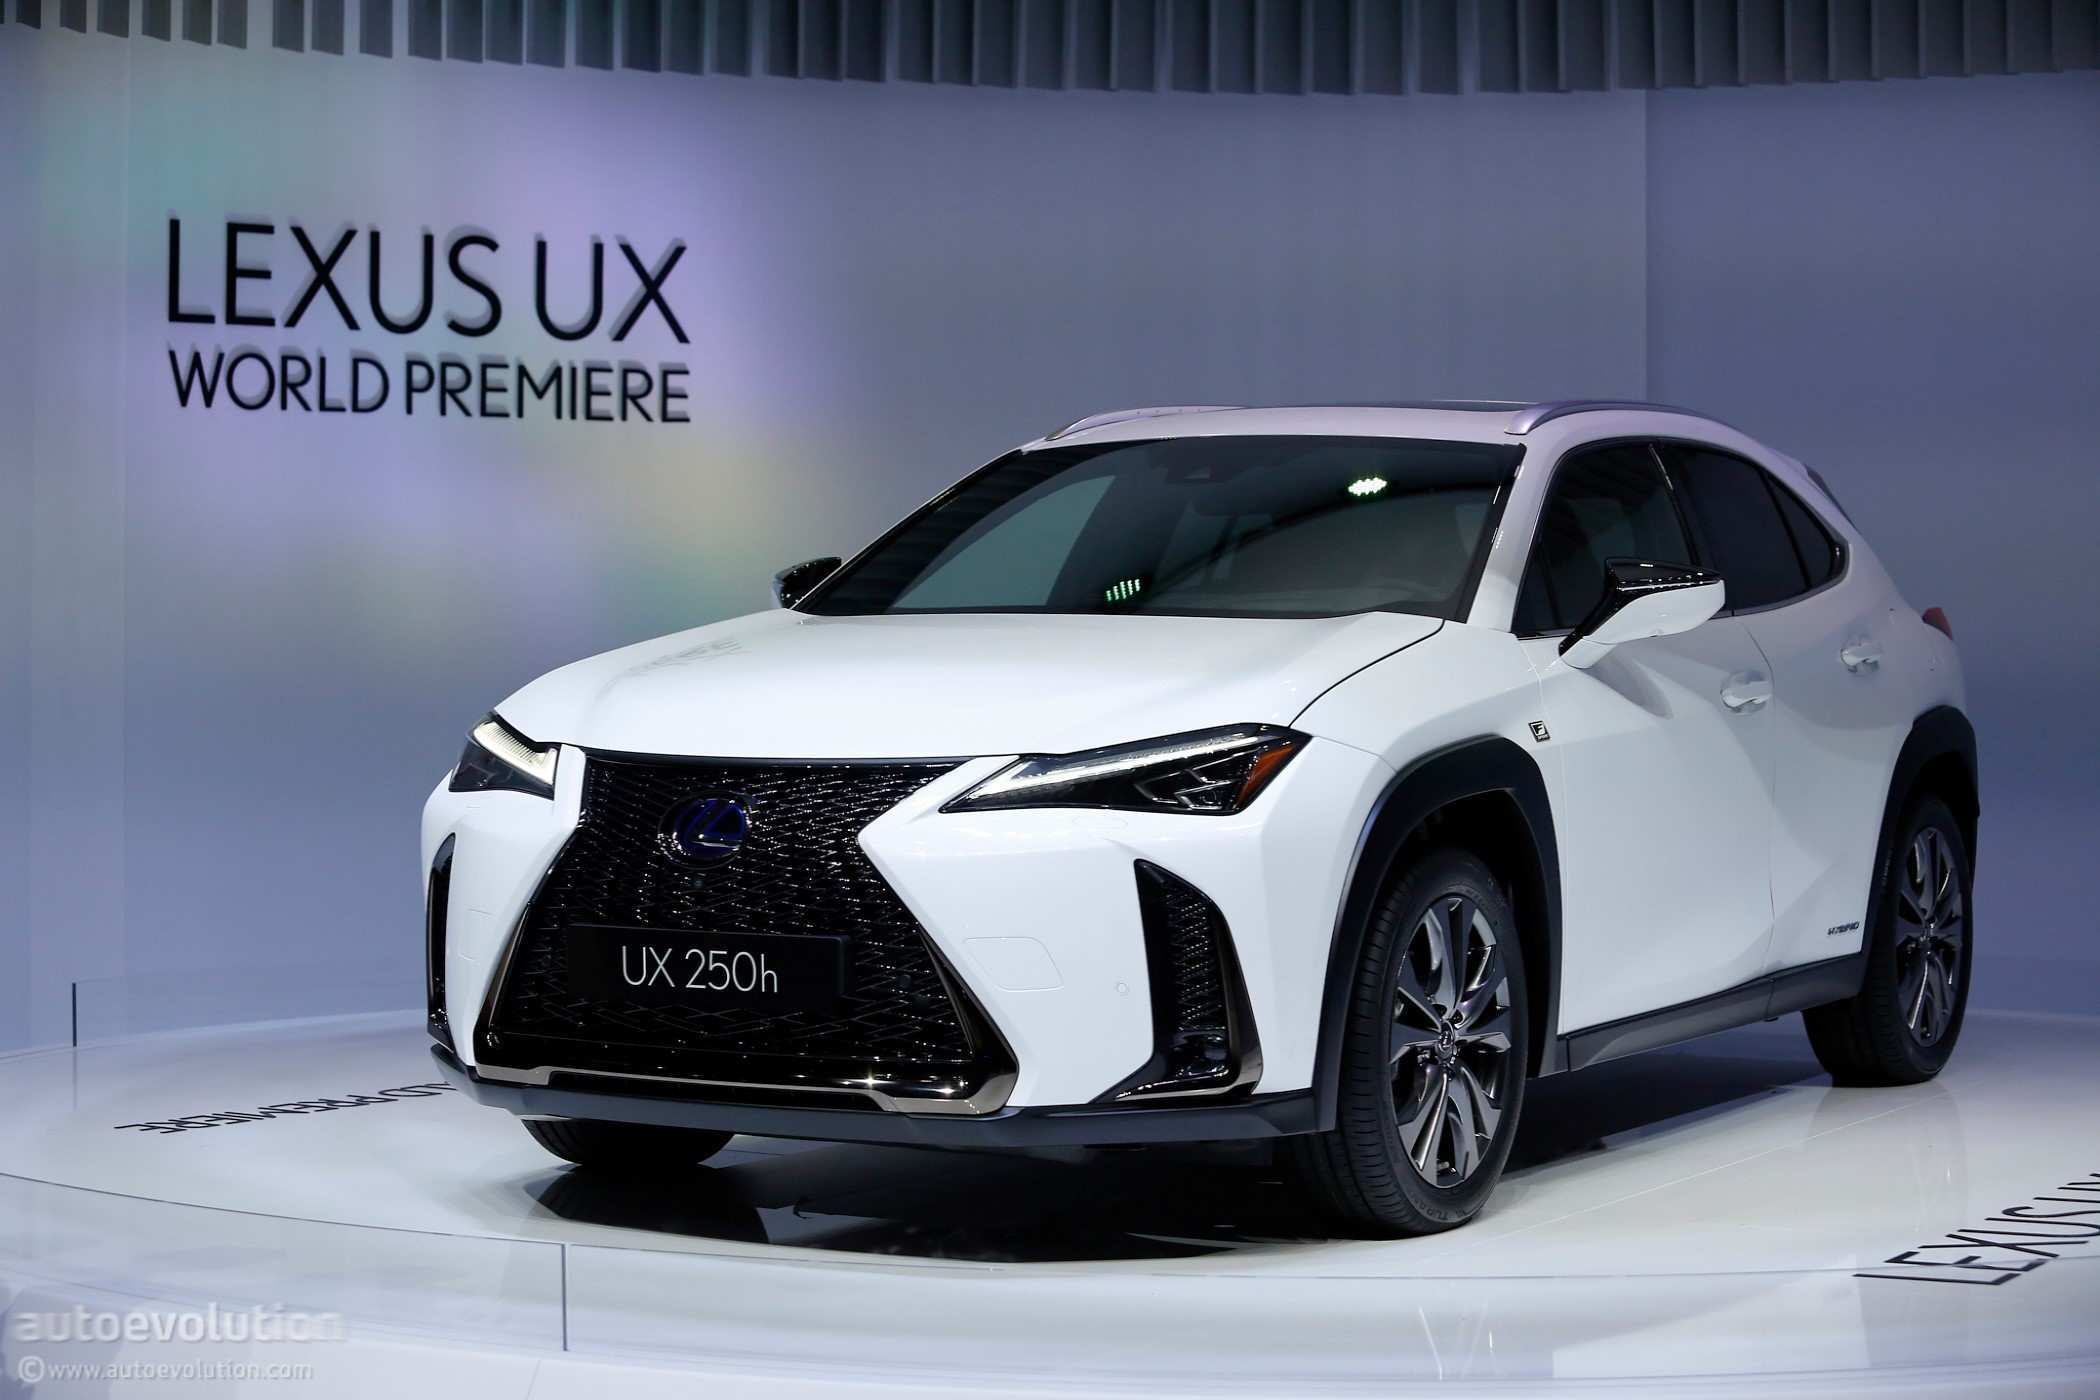 54 All New Lexus 2020 Ux Overview with Lexus 2020 Ux